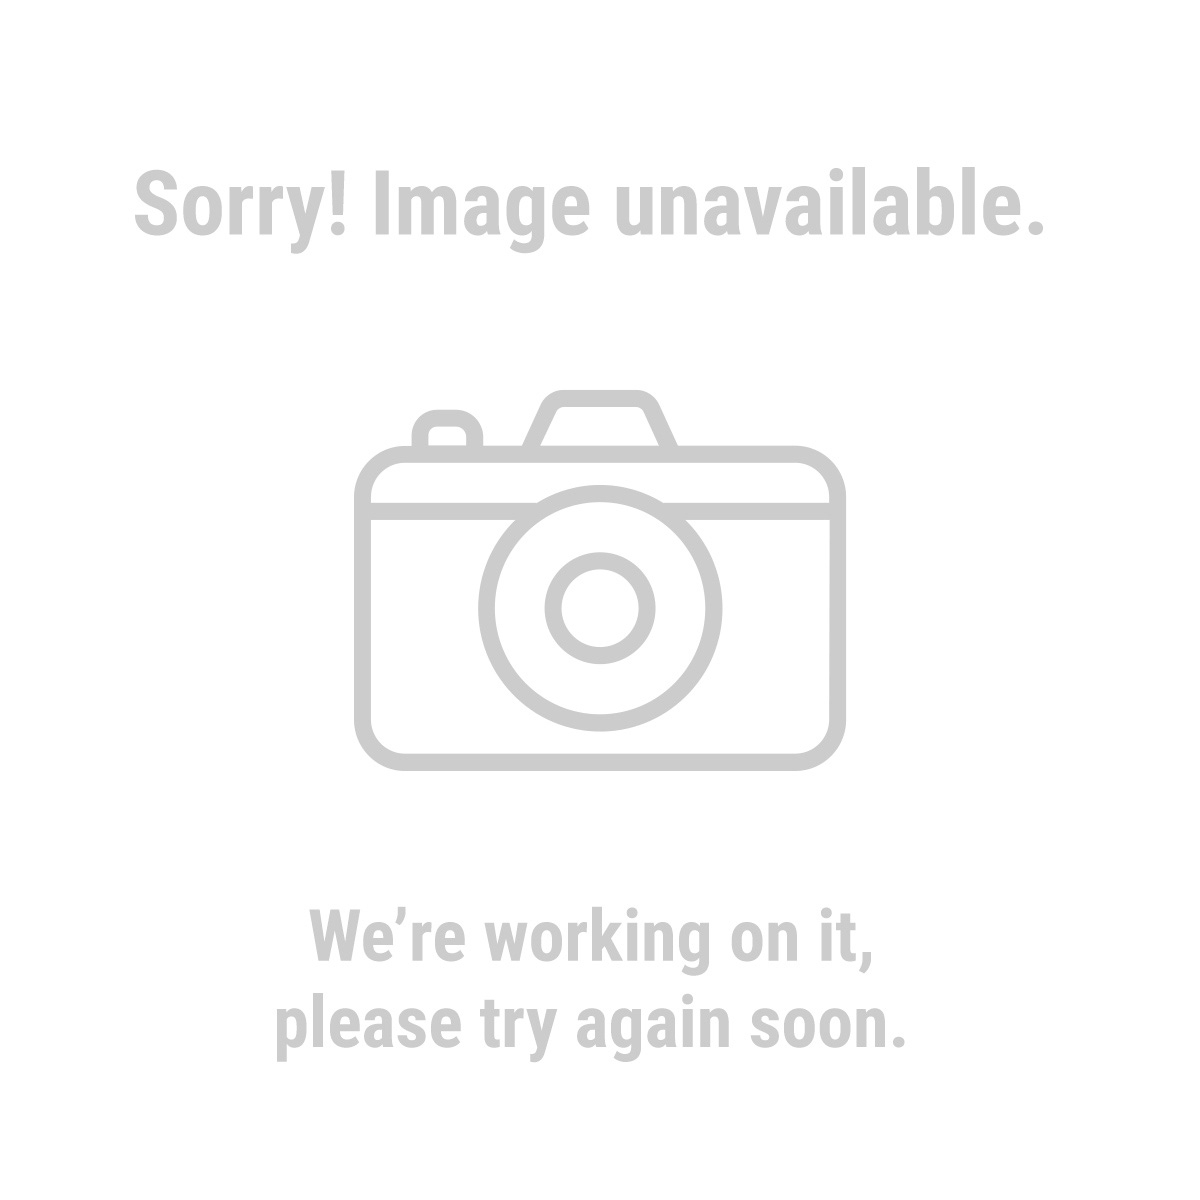 Western Safety 94334 Ear Muffs